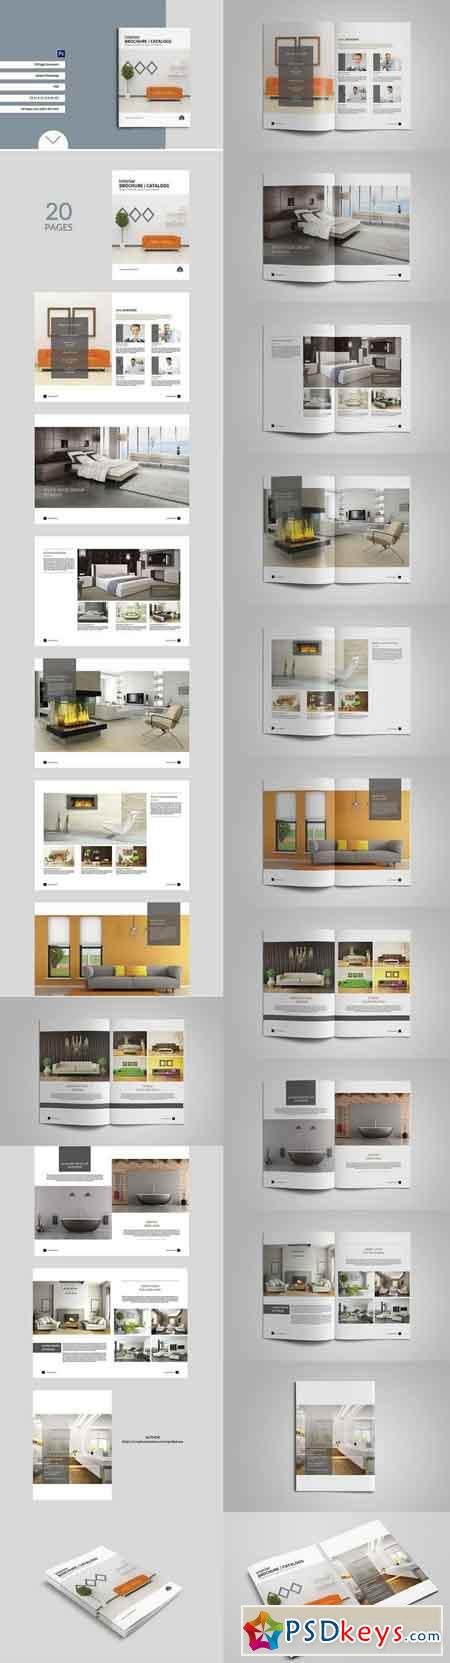 Interior Brochure Catalogs Template 1158057